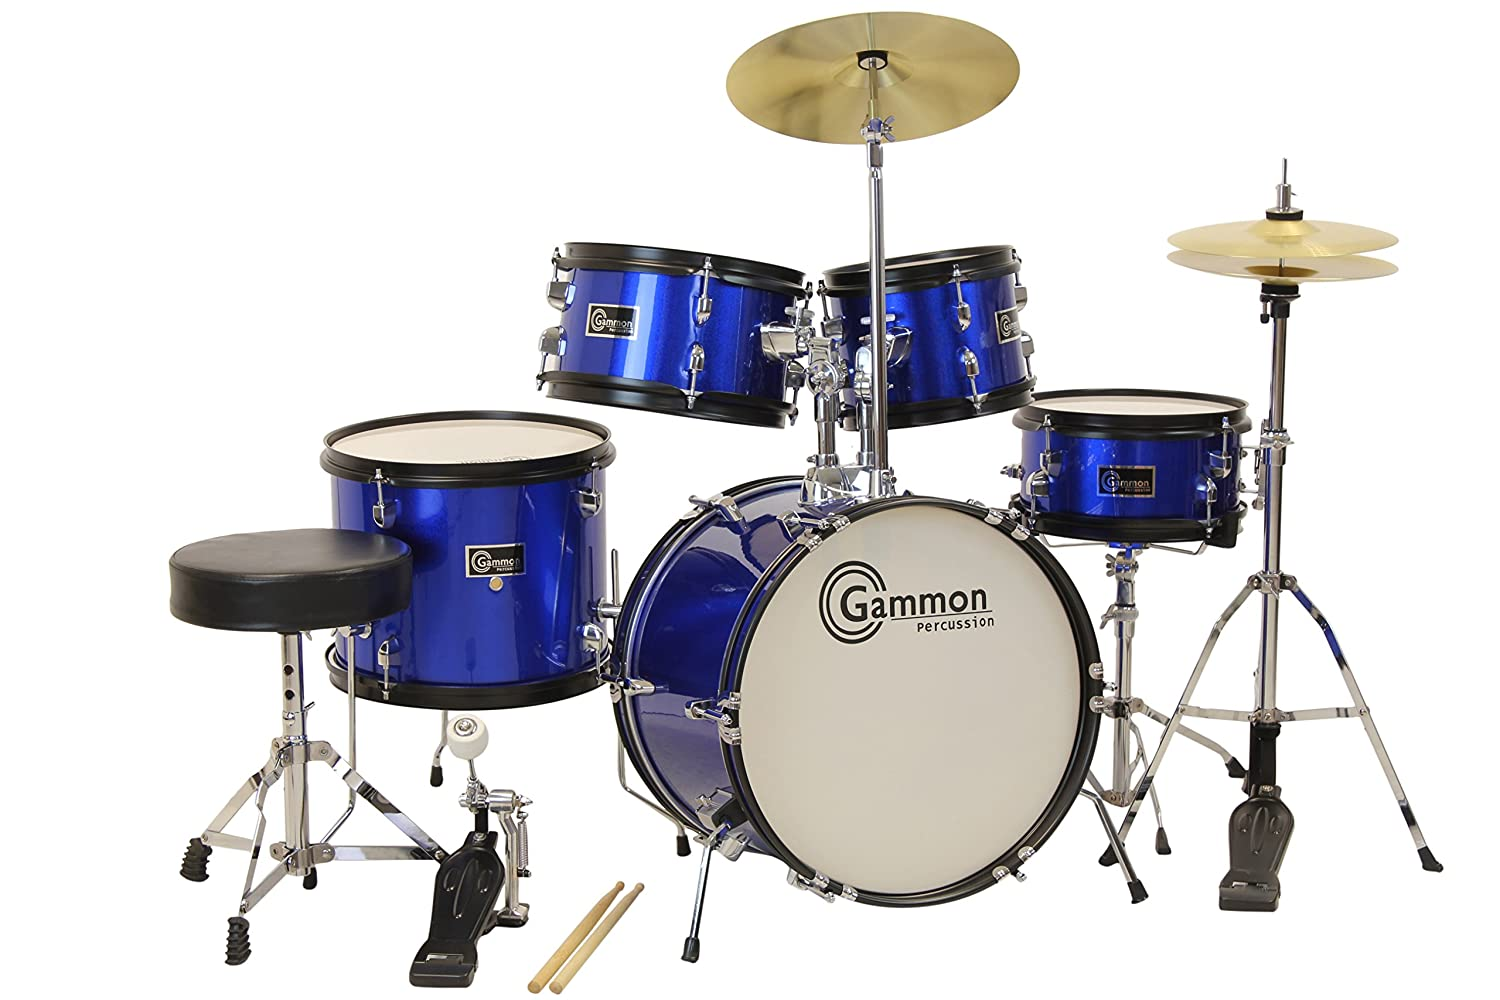 7 Best Drum Set For Kids Buying Guide 2019